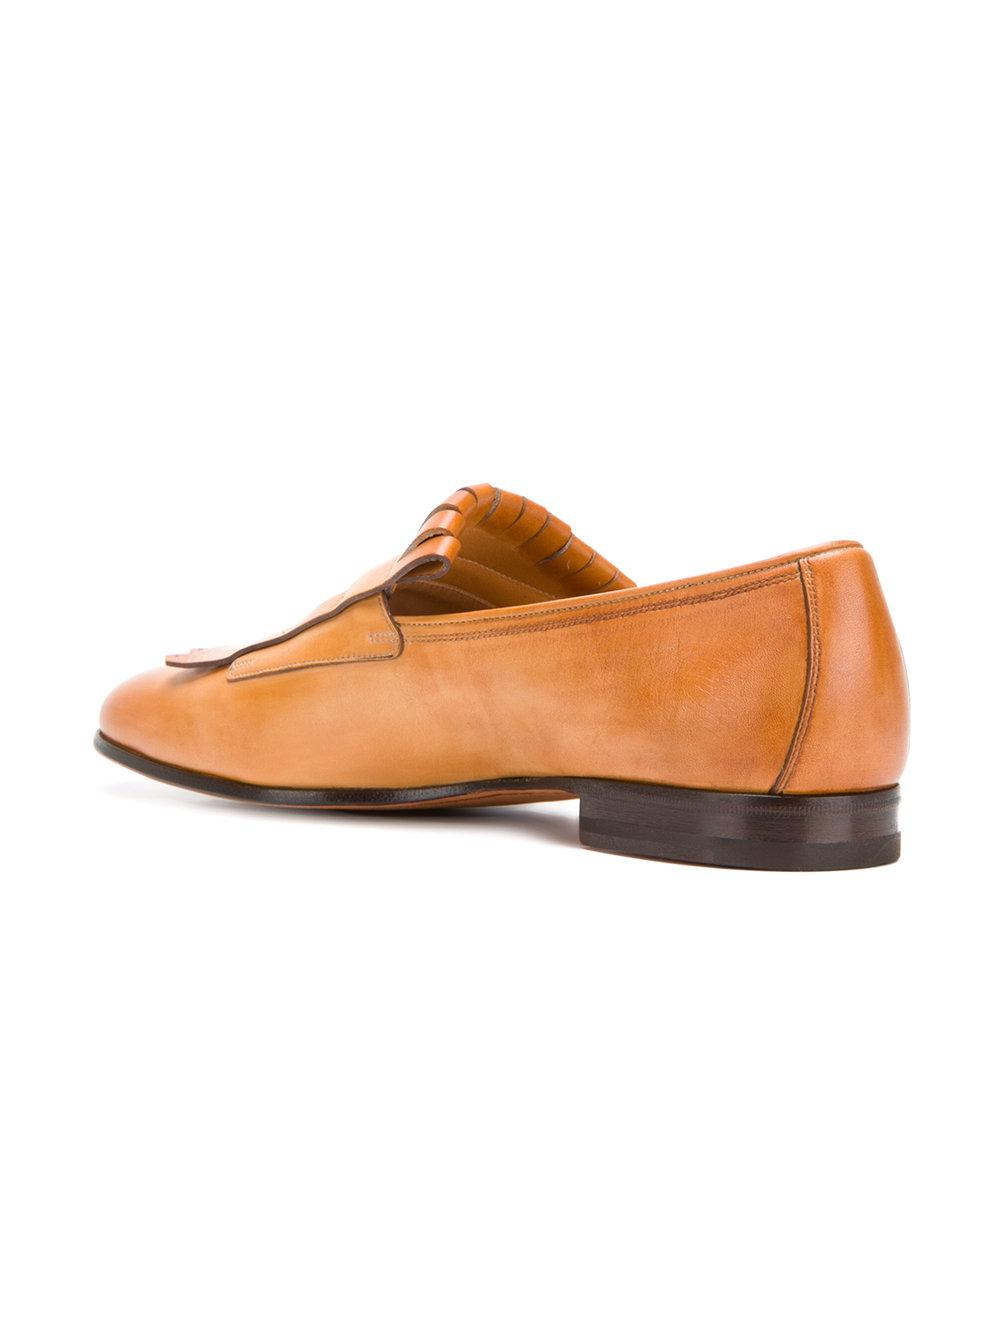 classic buckled loafers - Brown Santoni VQ5ZqwFttc